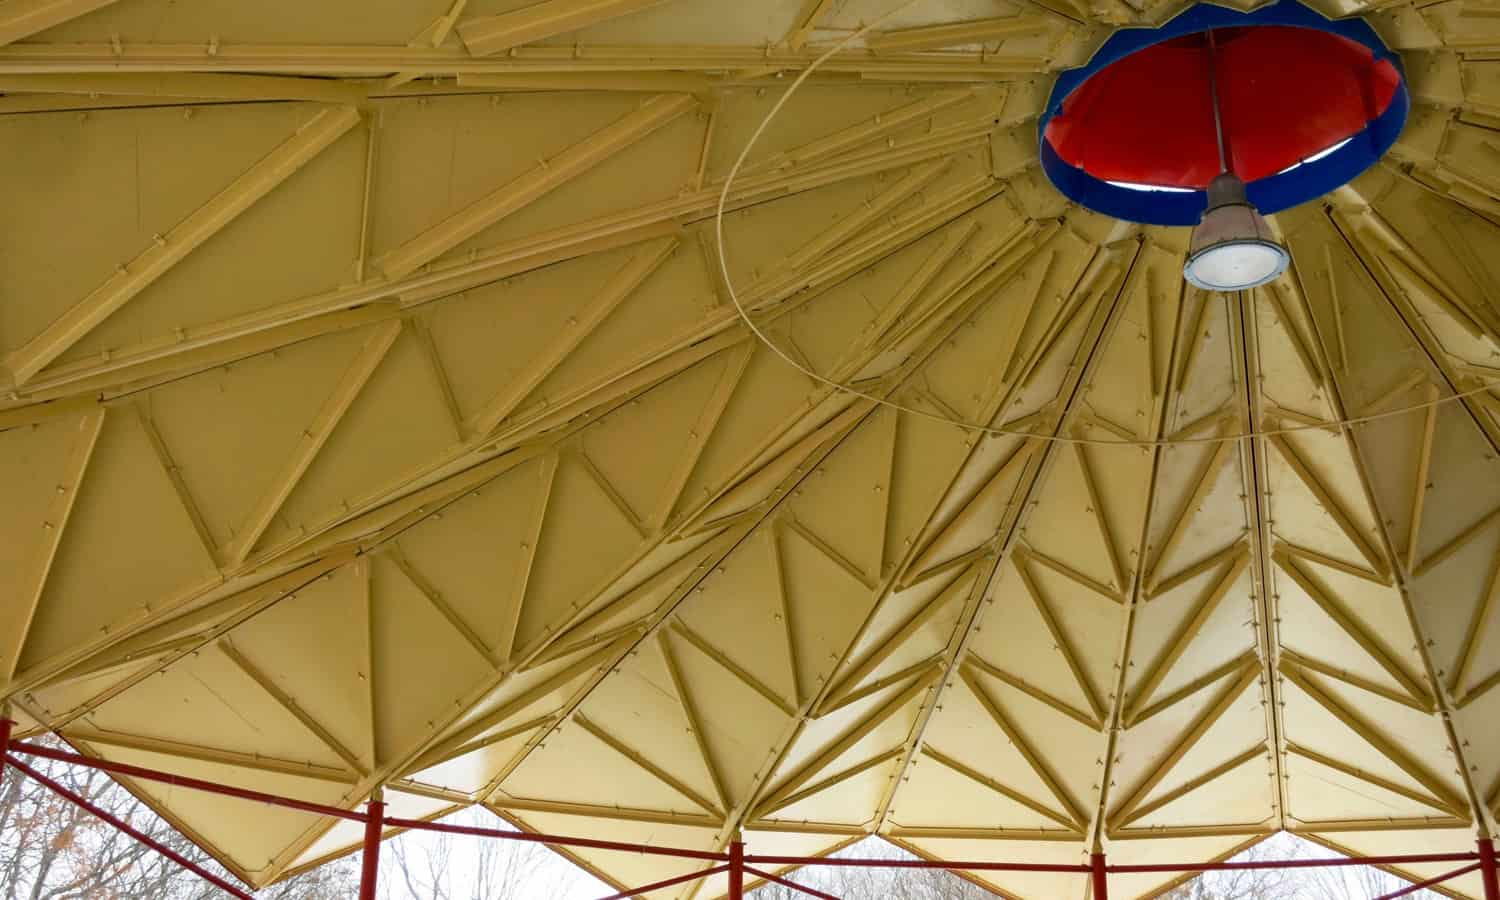 Roof of refreshment stand